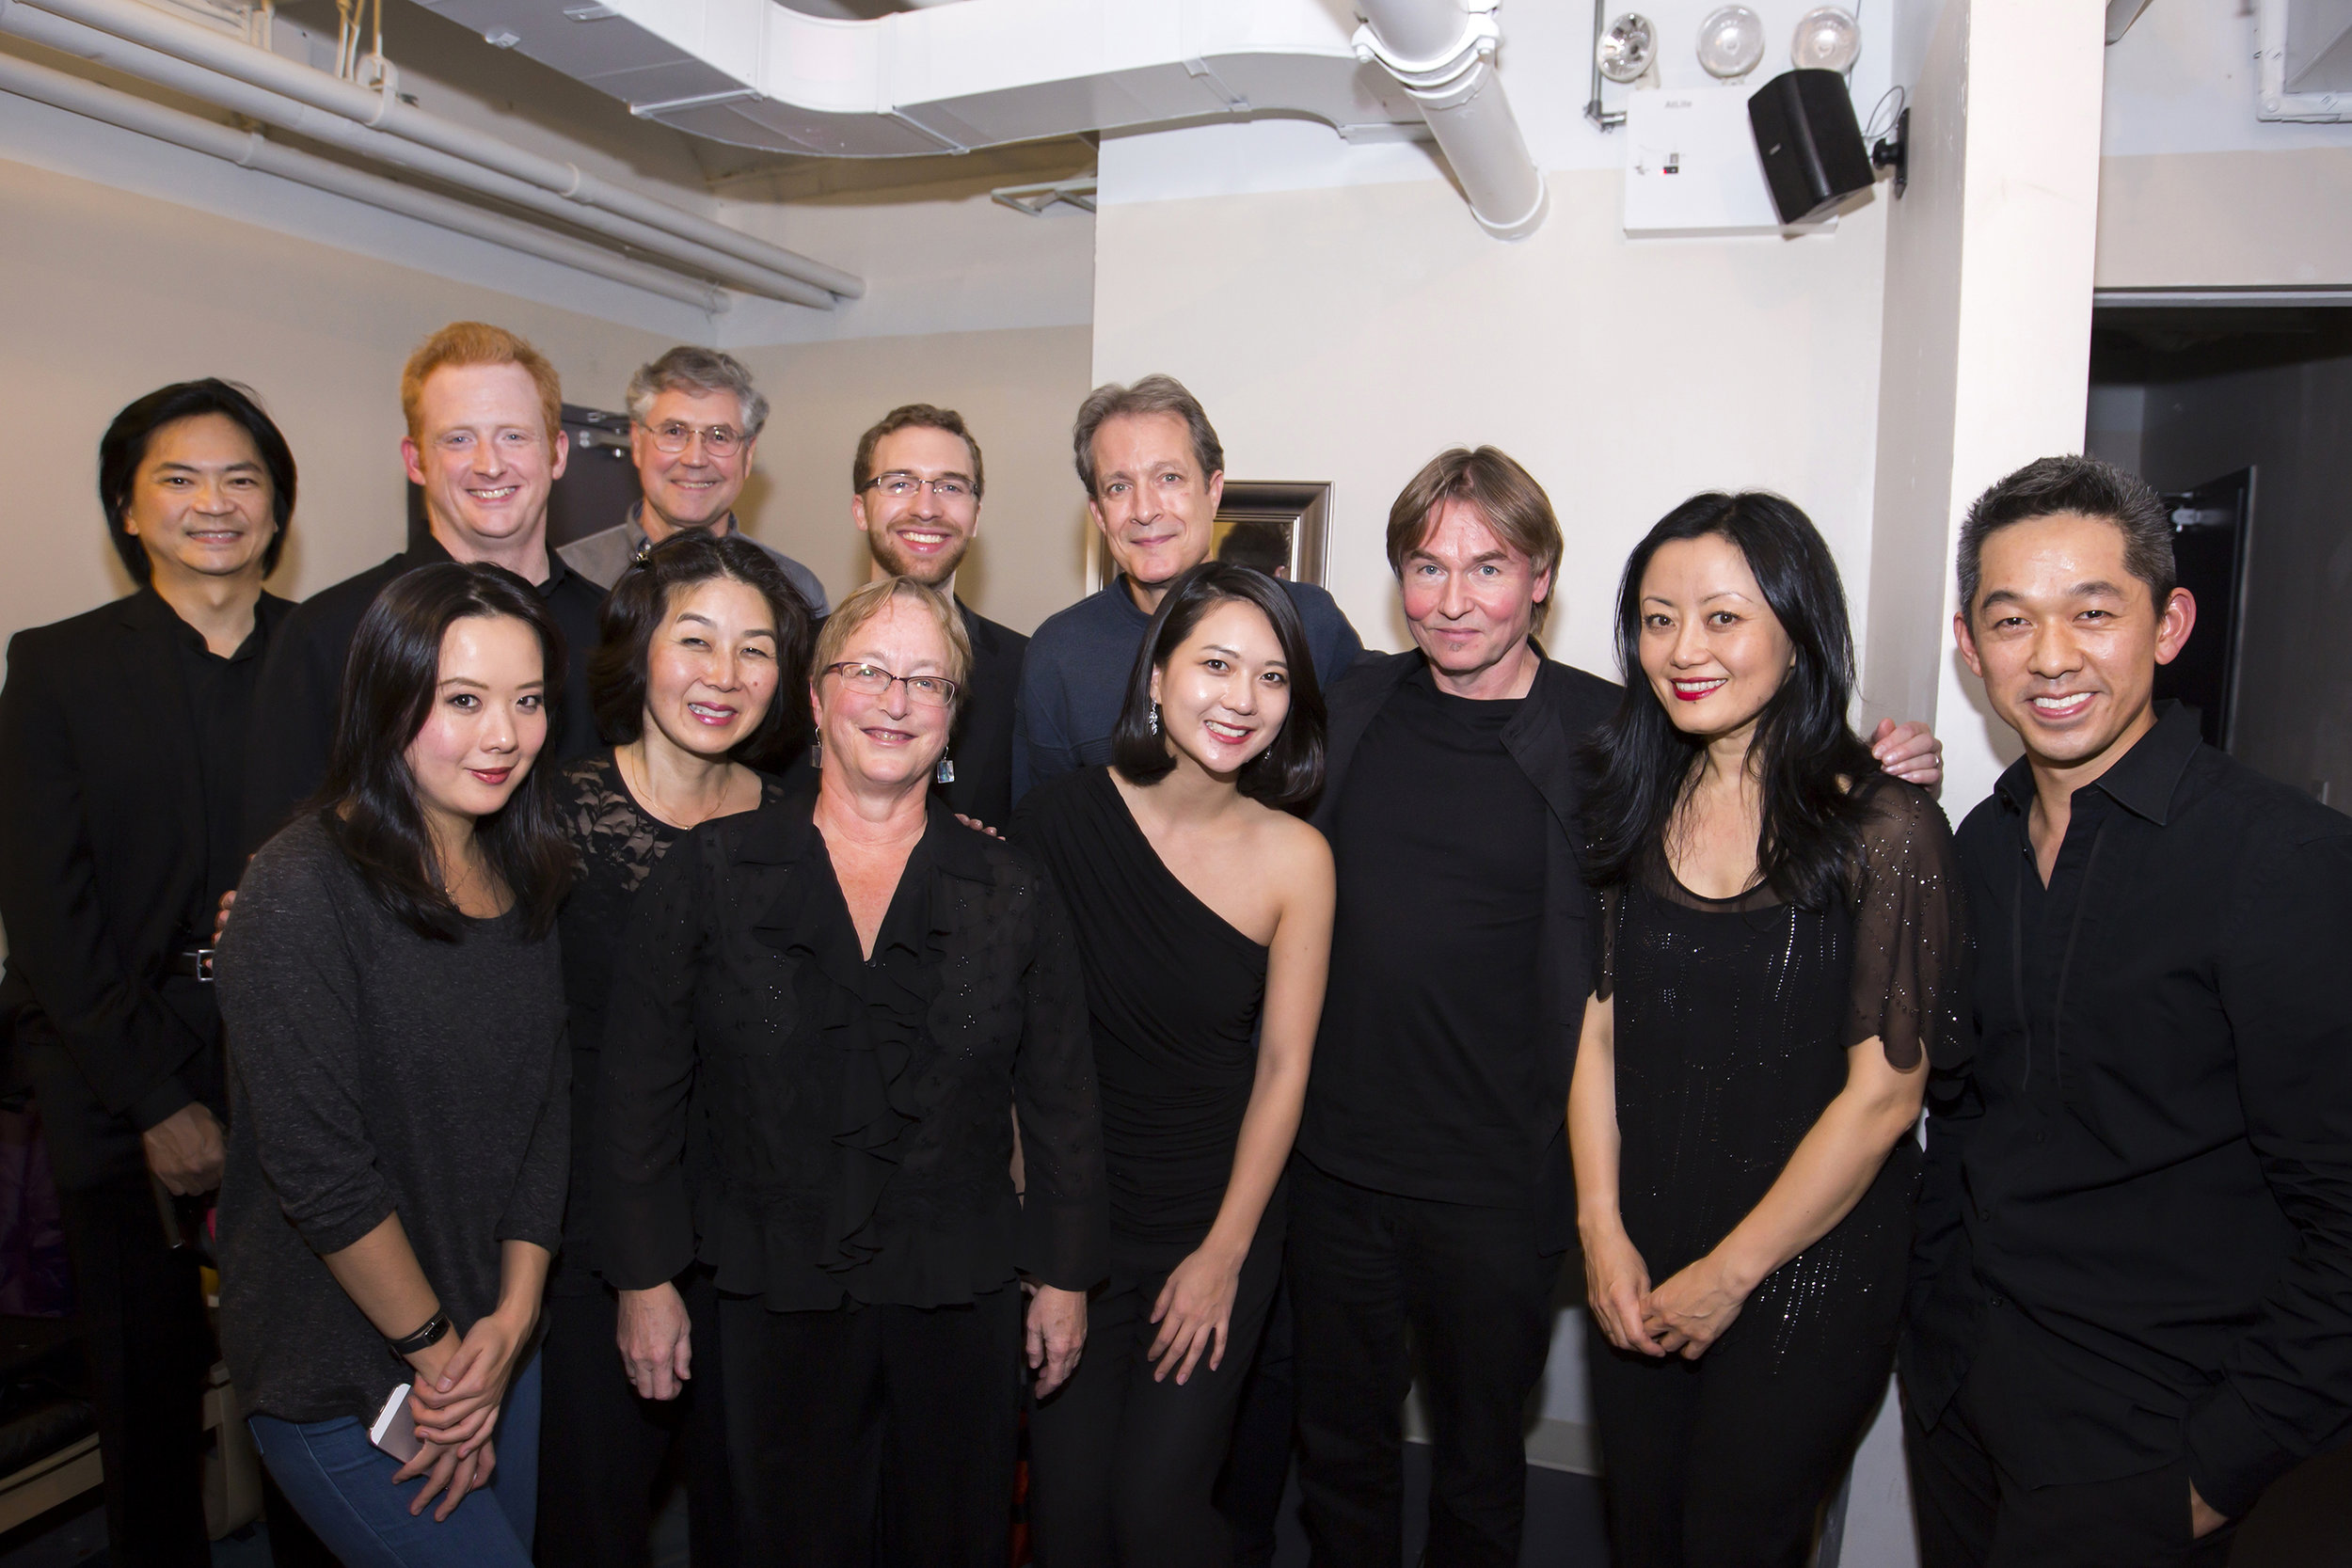 Esa-Pekka Salonen's tenure as Composer-in-Residence (2015–18) has fused composition with conducting and curating. Highlights include the New York Premieres–Philharmonic Co-Commissions of his  Karawane  (including on a Young People's Concert) and Cello Concerto with Yo-Yo Ma, and his conducting Messiaen's  Turangalîla-symphonie  during  Messiaen Week  and the Kaija Saariaho program  Circle Map  at Park Avenue Armory. Salonen is also advising on  CONTACT!  and, for the third and final season of his tenure, will curate a project for the 2018 NY PHIL BIENNIAL.